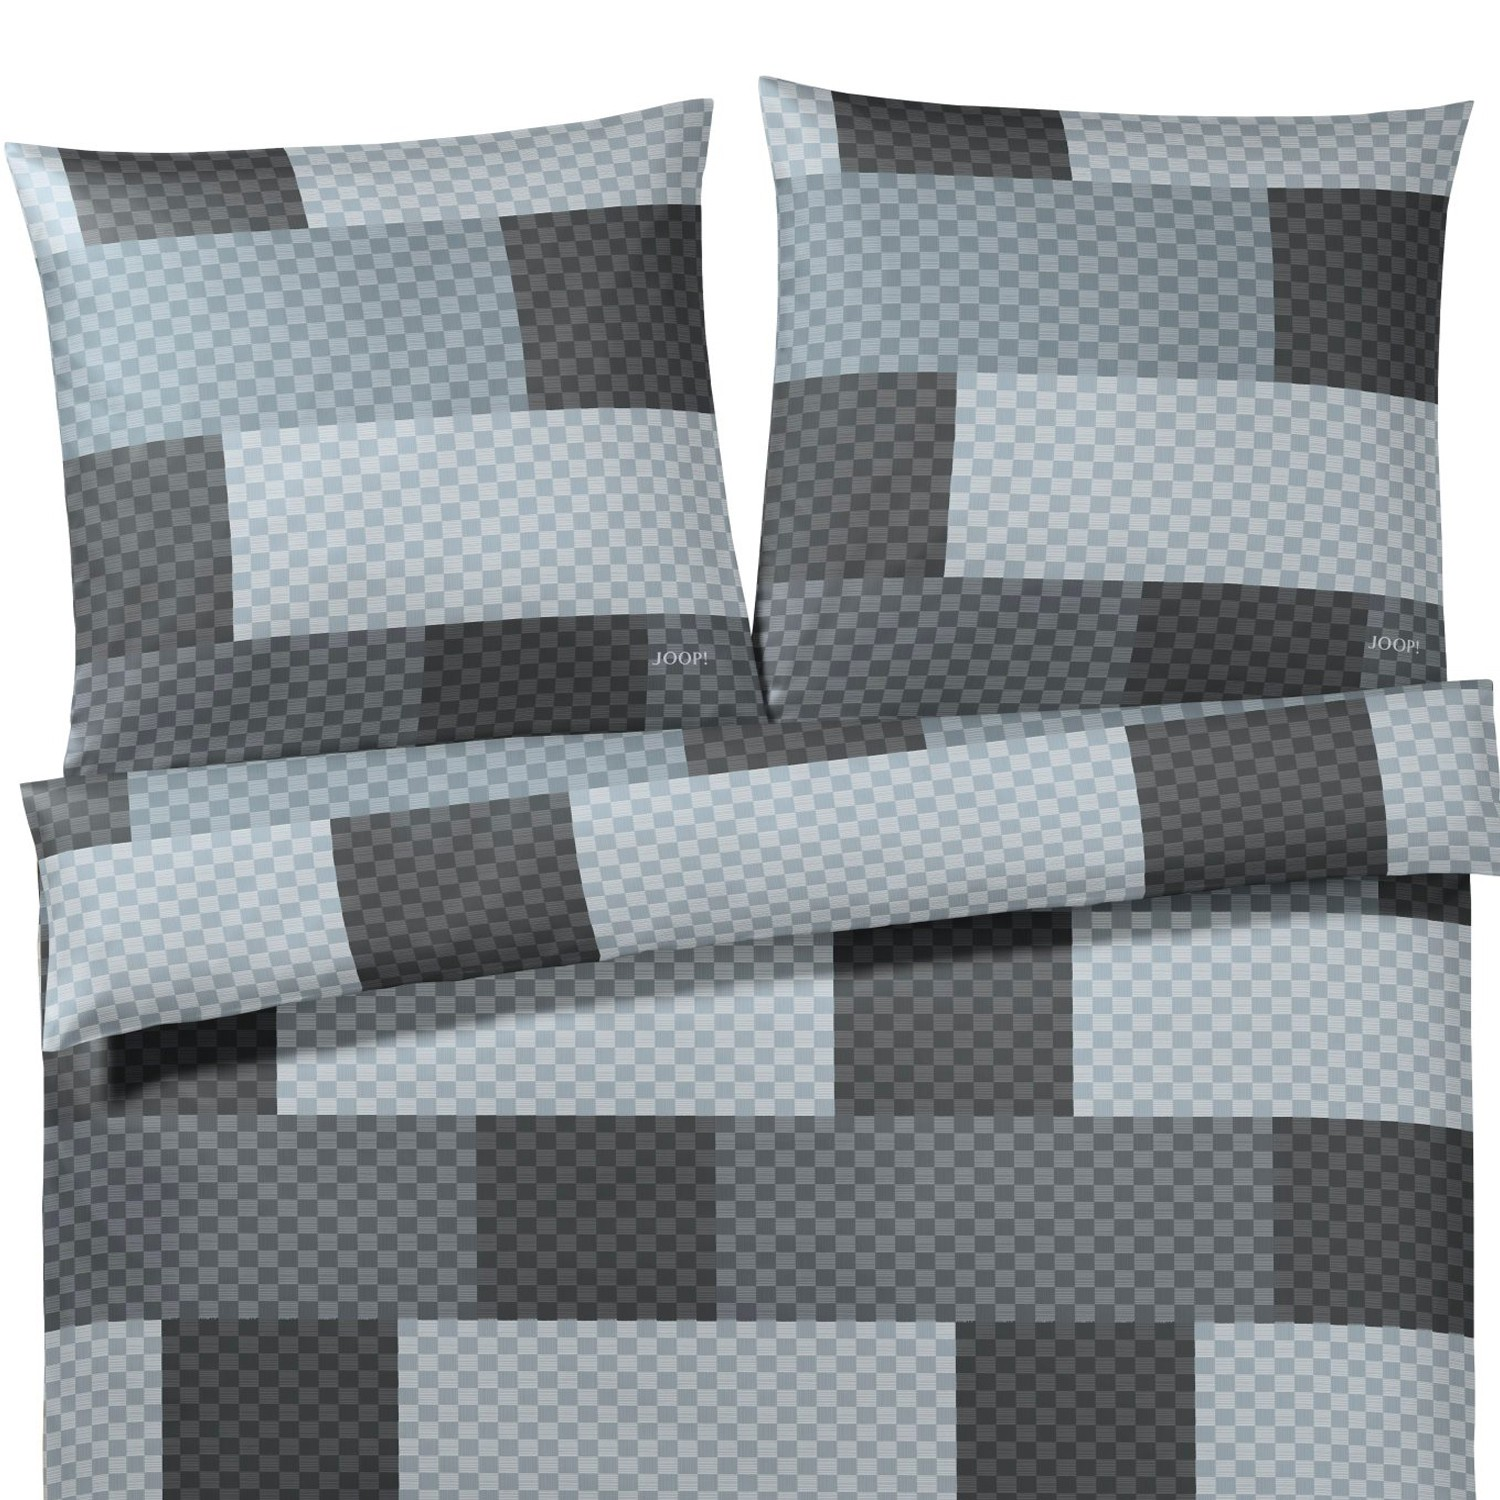 joop decke grau joop wohndecke strickplaid knit rose xcm. Black Bedroom Furniture Sets. Home Design Ideas